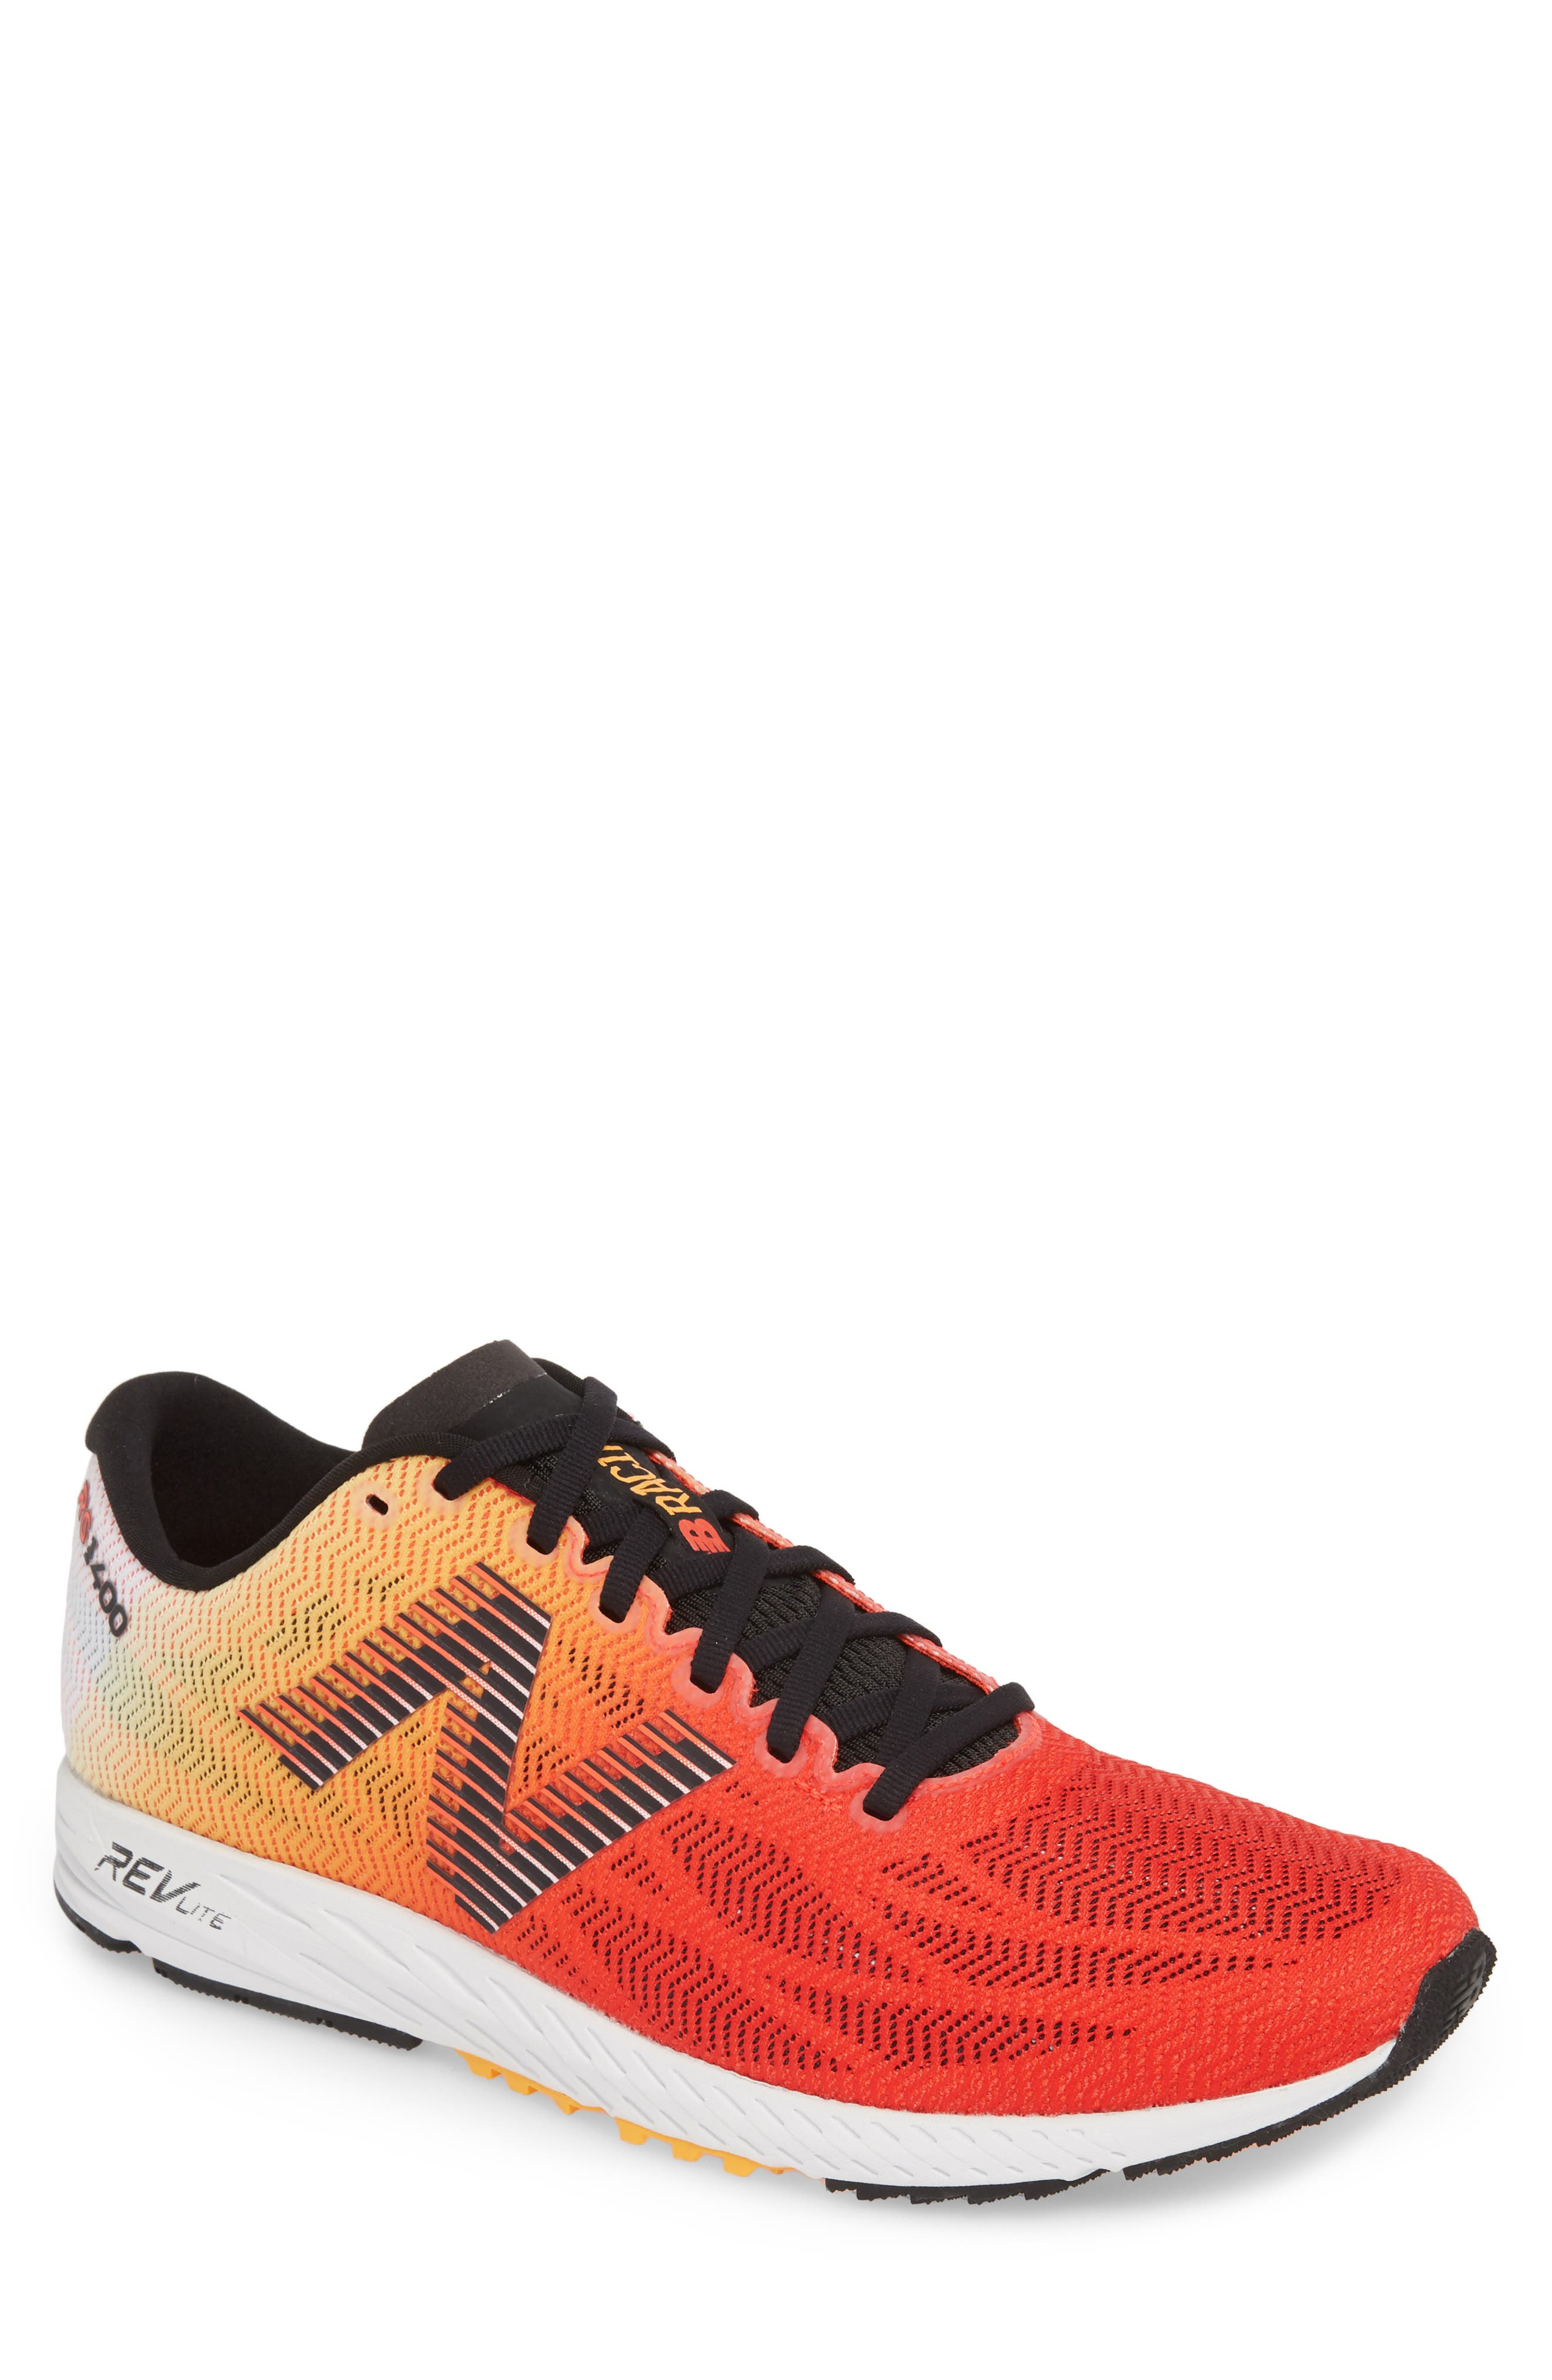 NEW BALANCE 1400v6 Running Shoe, Main, color, 100